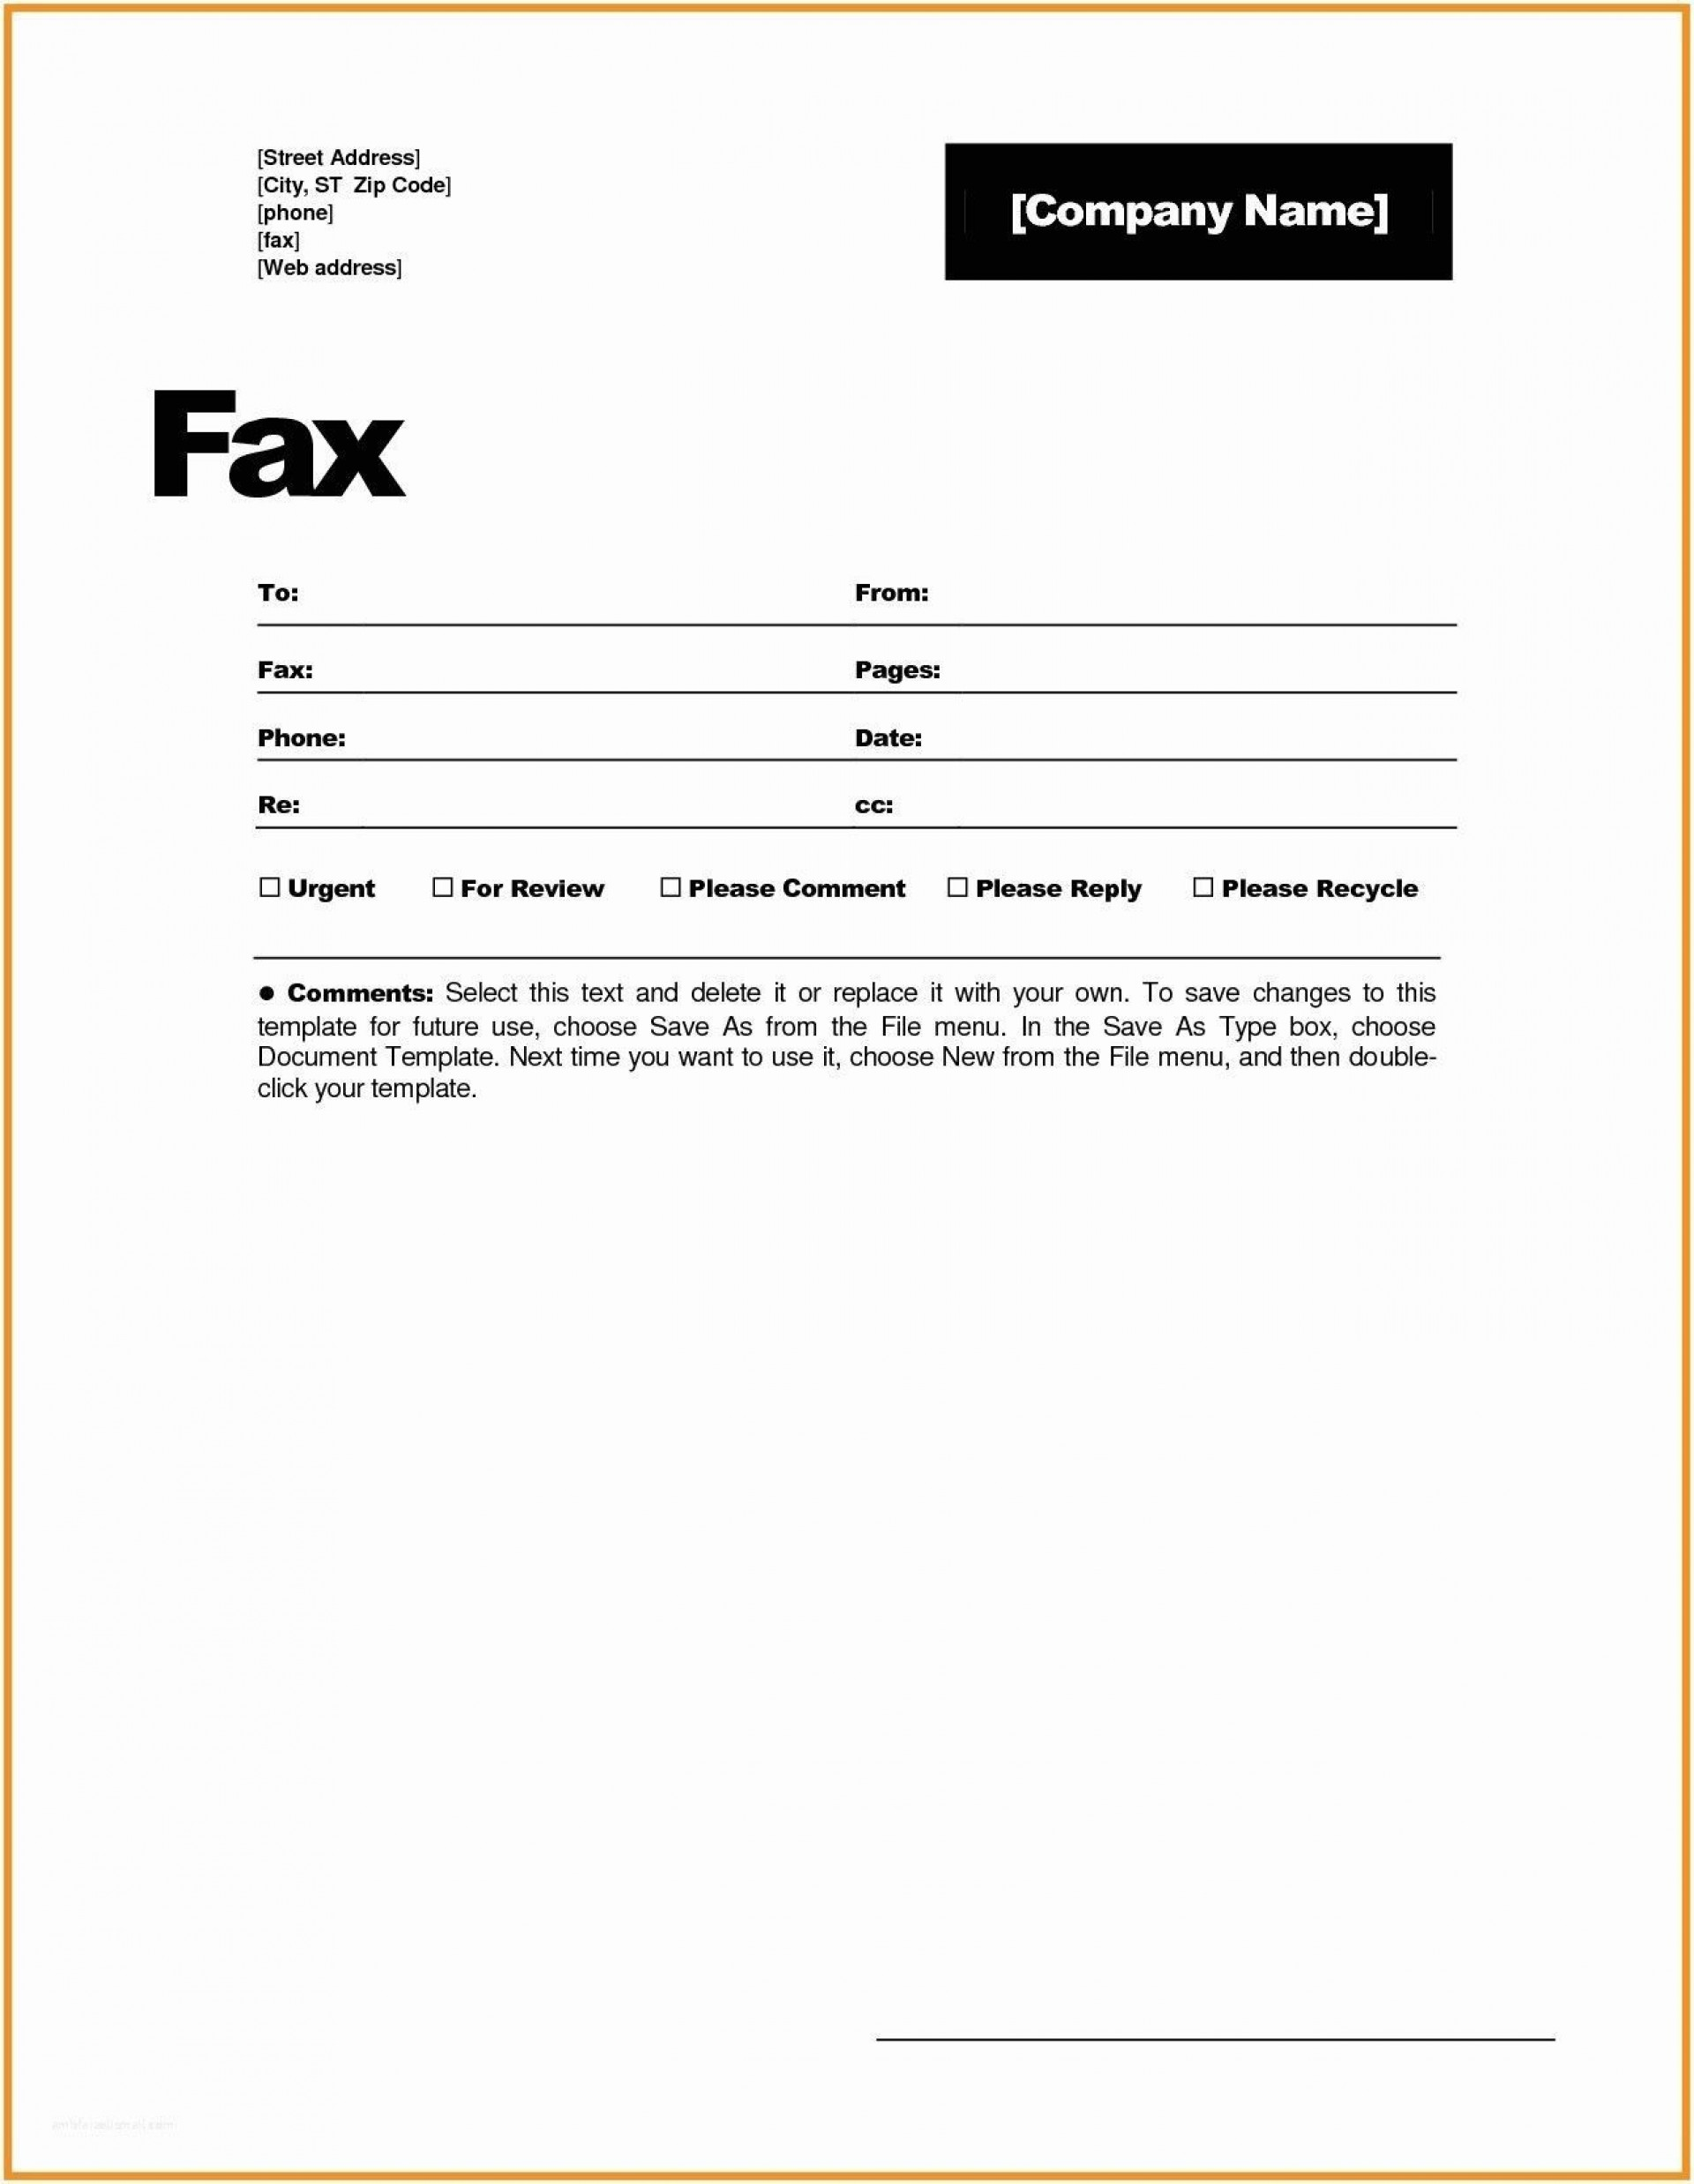 001 Magnificent General Fax Cover Letter Template Photo  Sheet Word Confidential Example1920